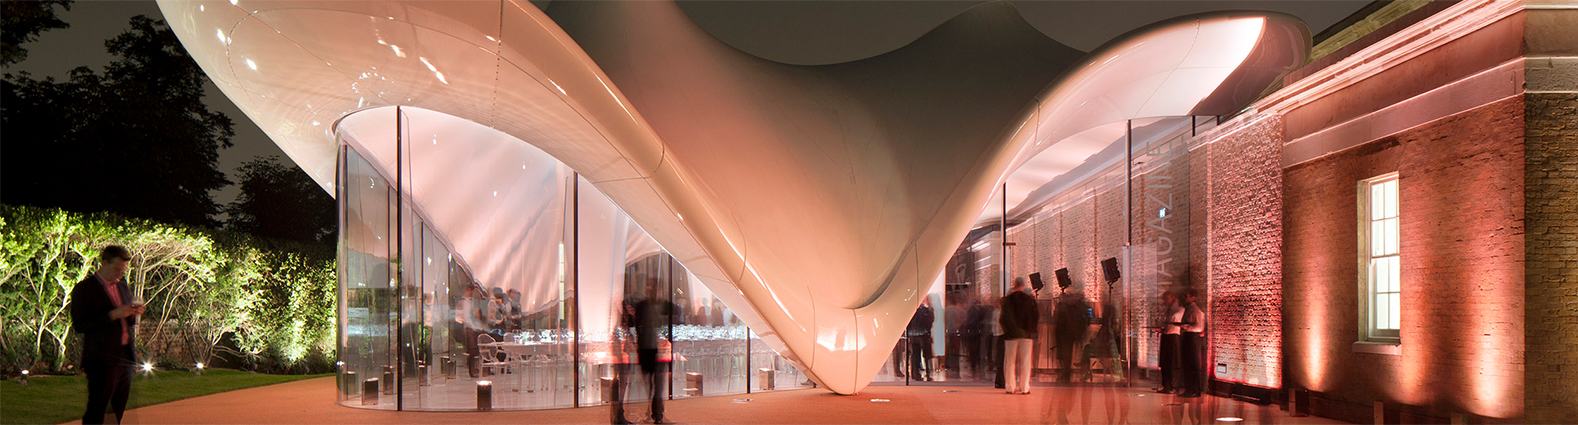 Serpentine Sackler Gallery organic GRP cladding allowing retention of stretched fabric roof